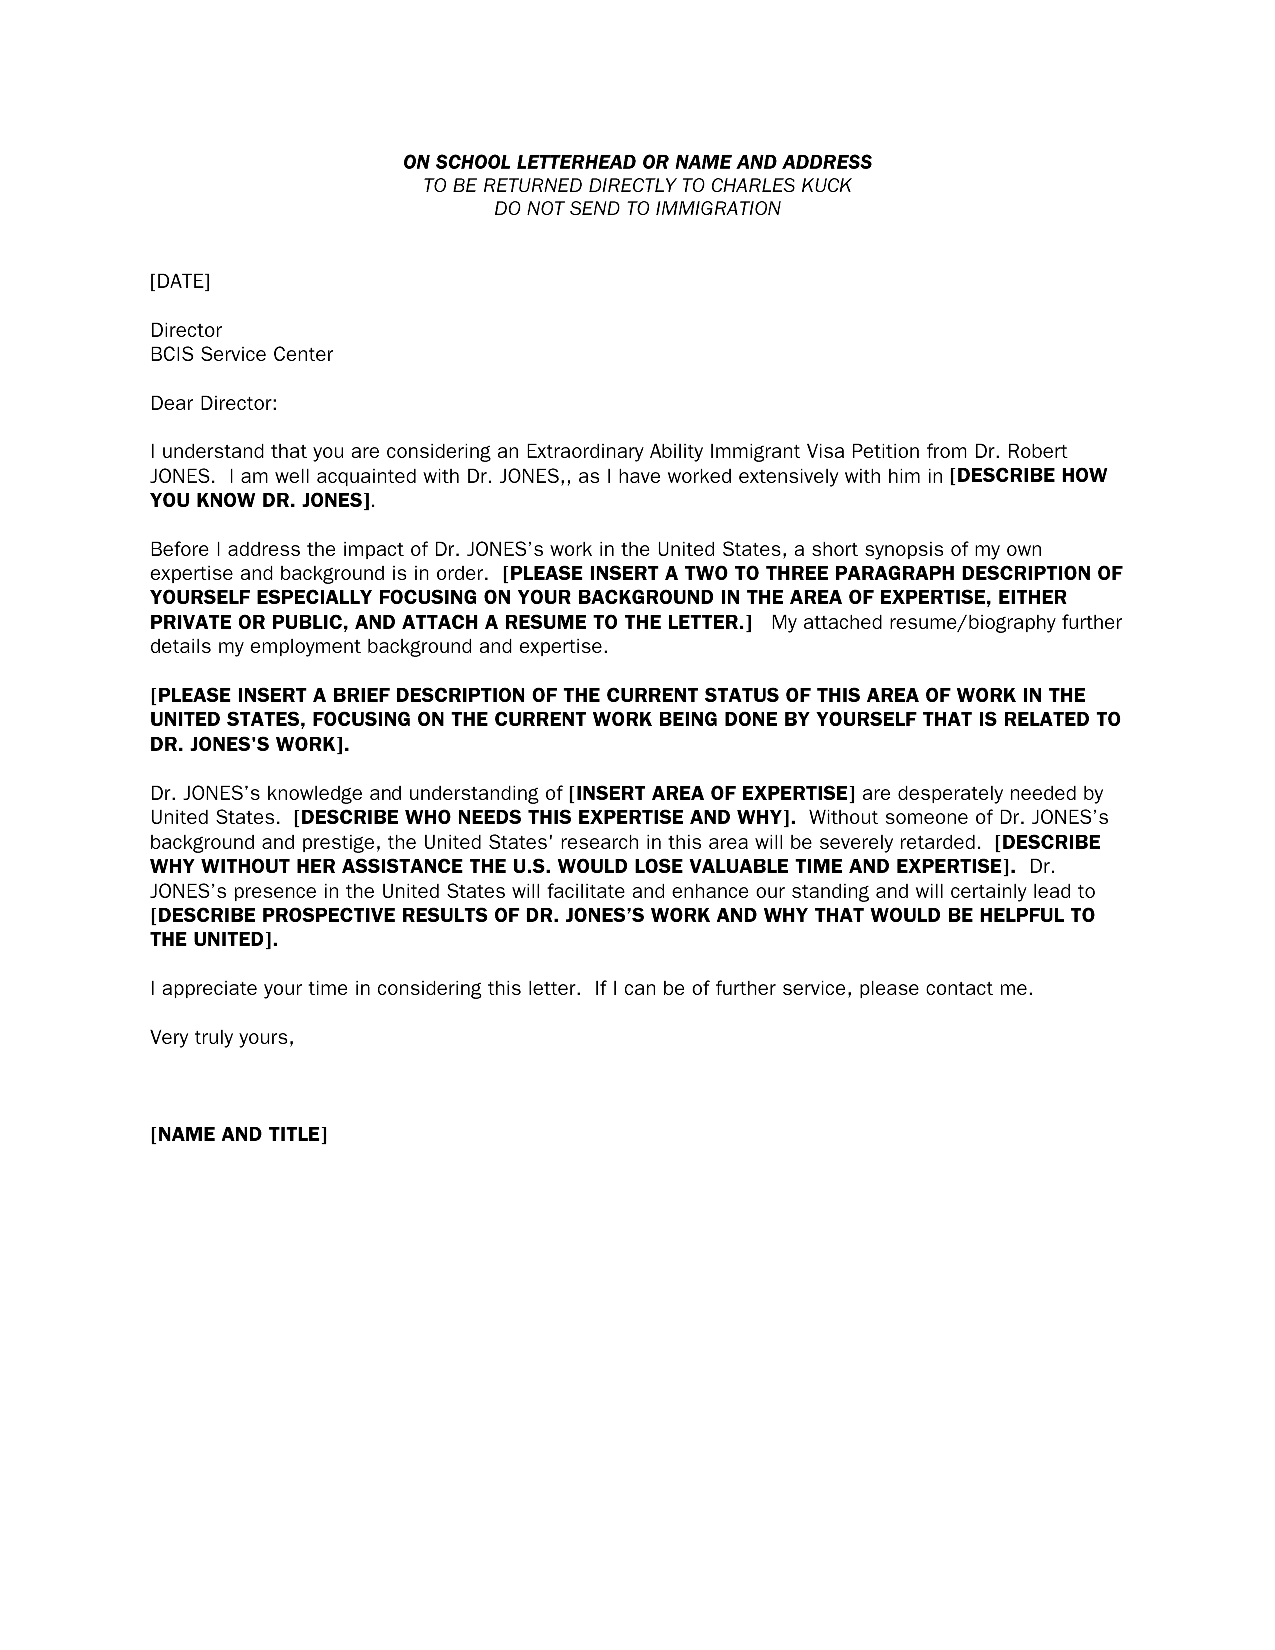 Immigration Recommendation Letter Template - Personal Re Mendation Letter Sample for Immigration Neuer